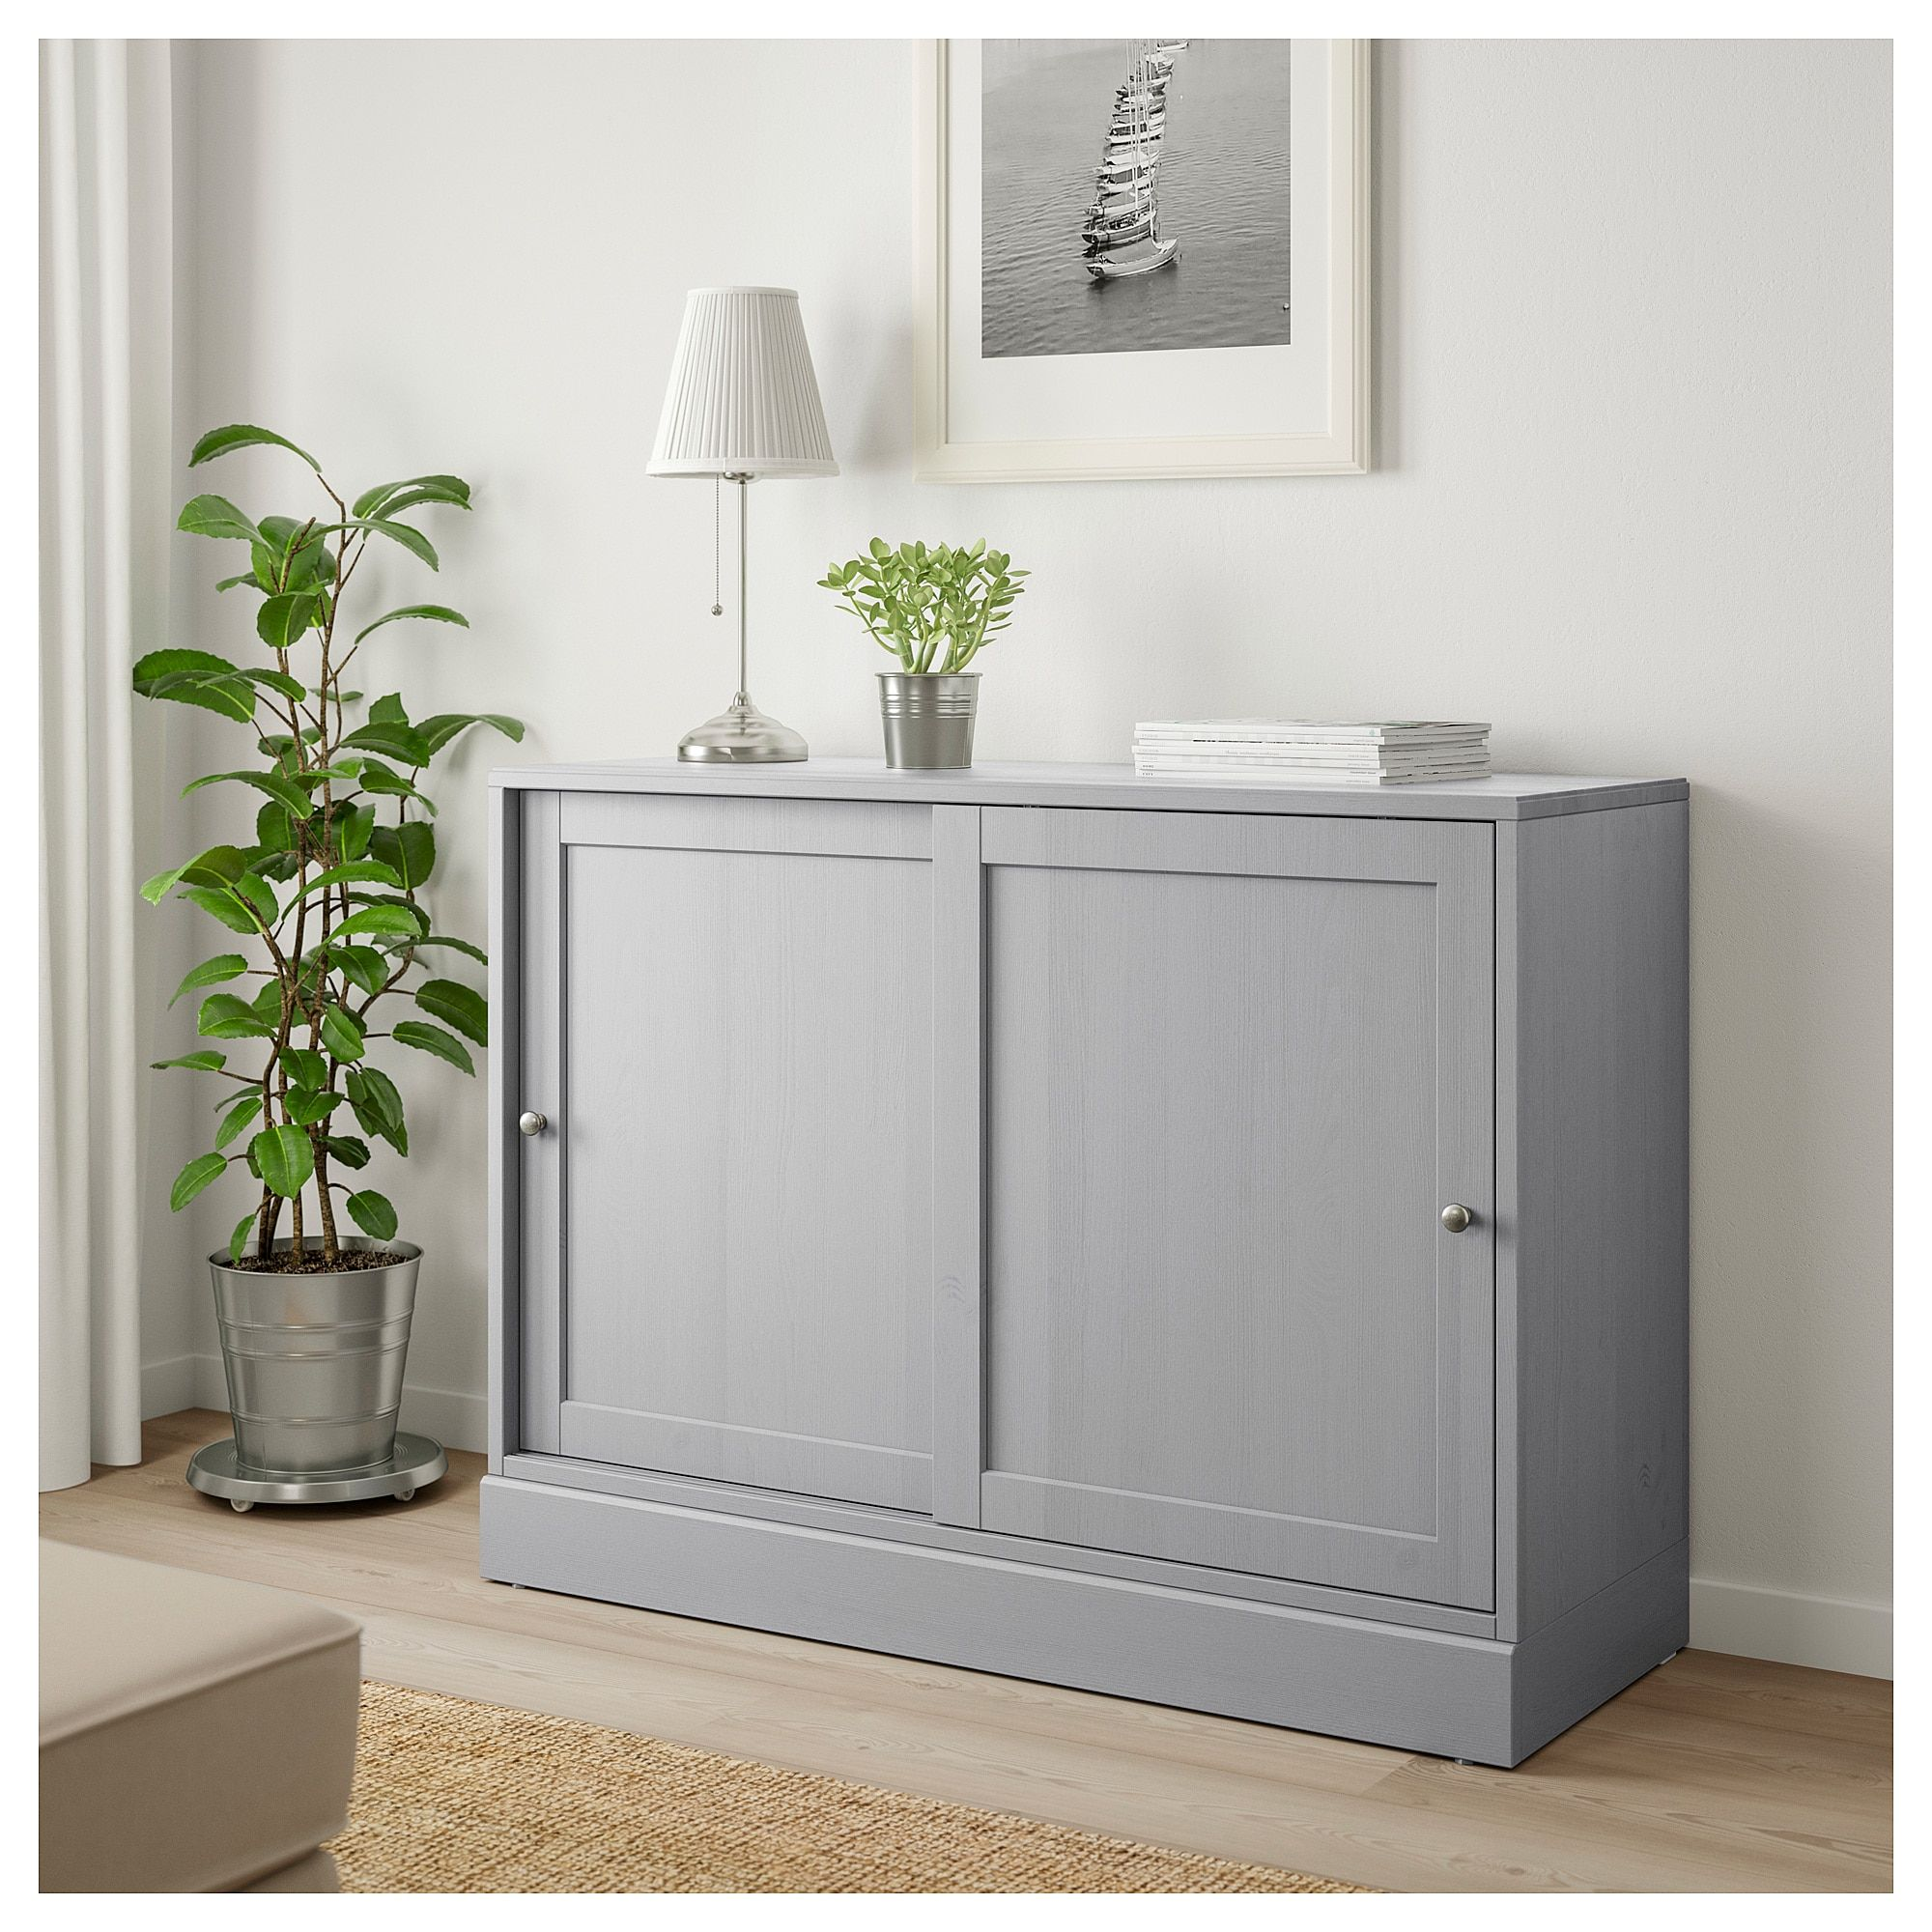 Havsta Cabinet With Base Gray Shop Here Ikea Ikea Cabinet Movable Shelf